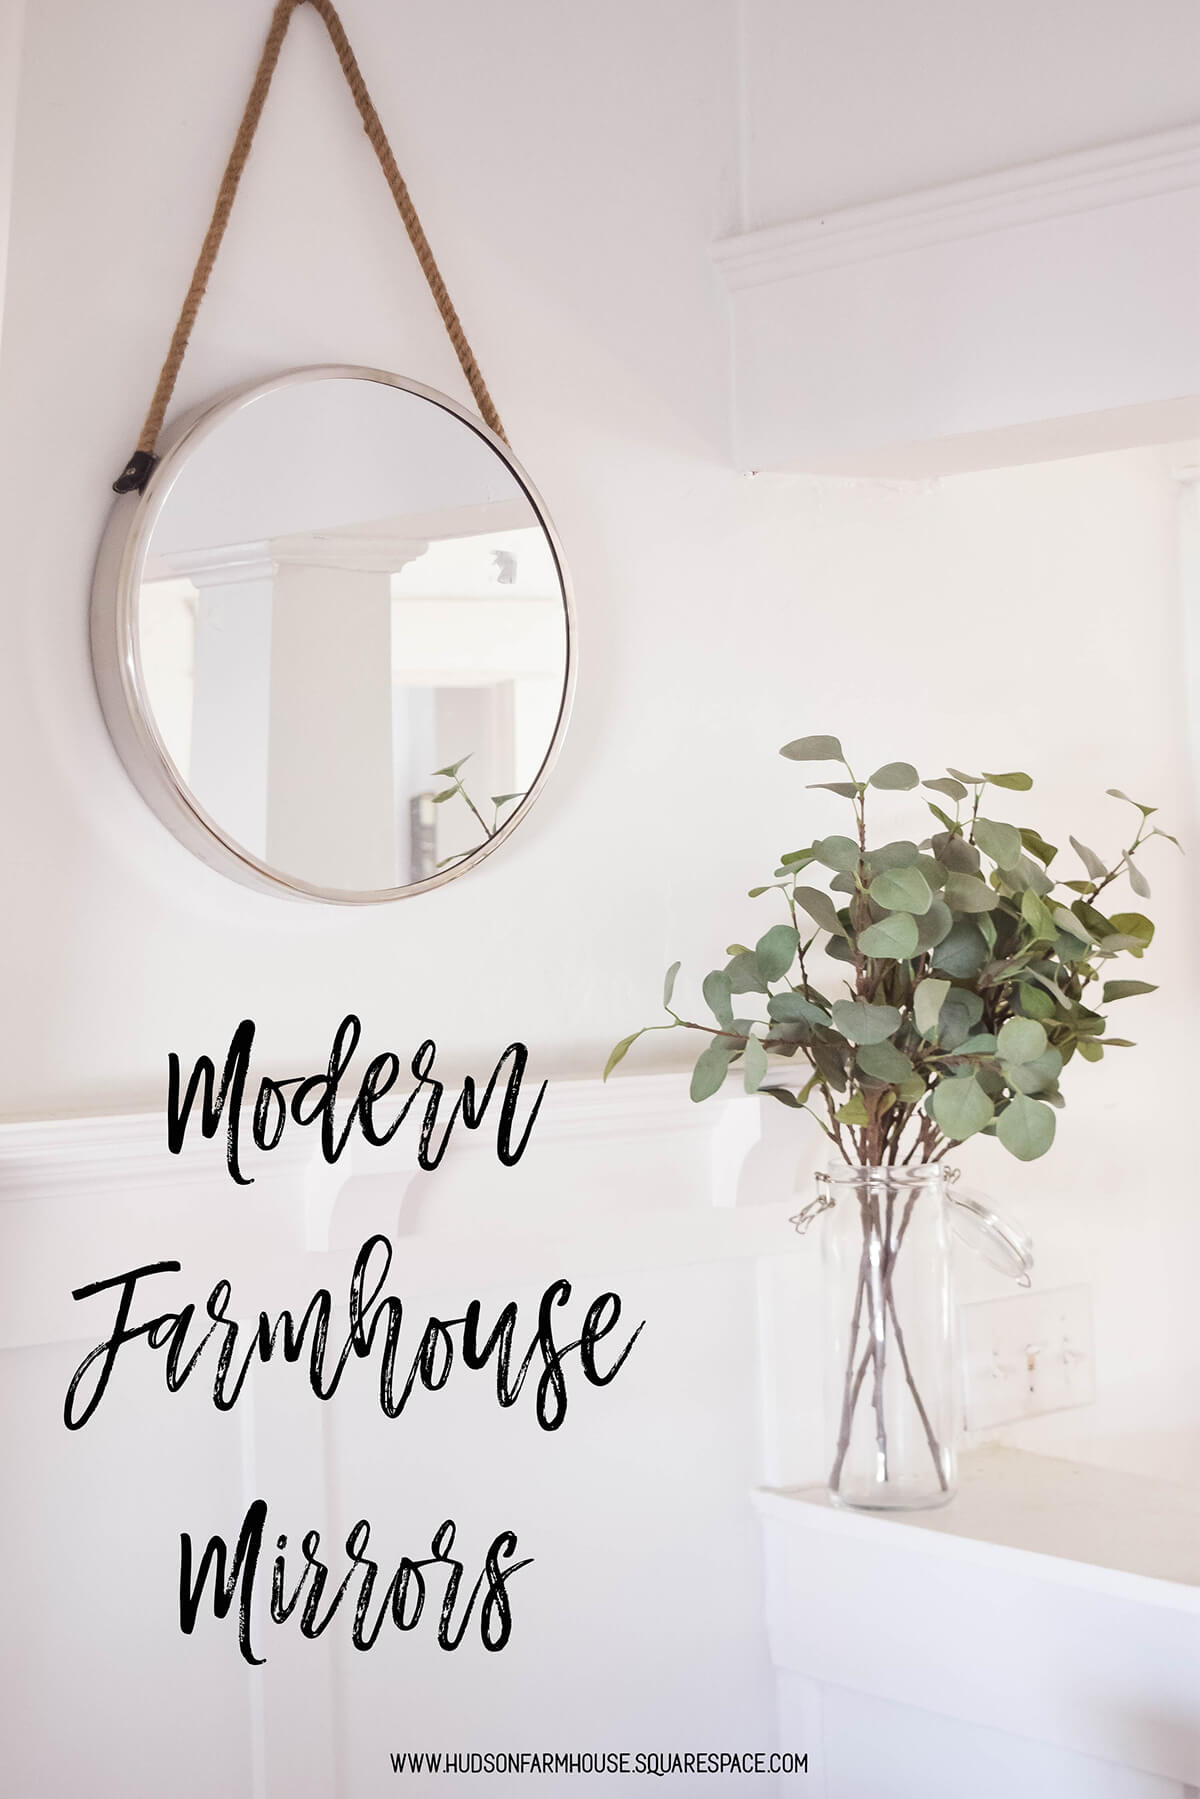 Round Silver Mirror Hanging on the Wall